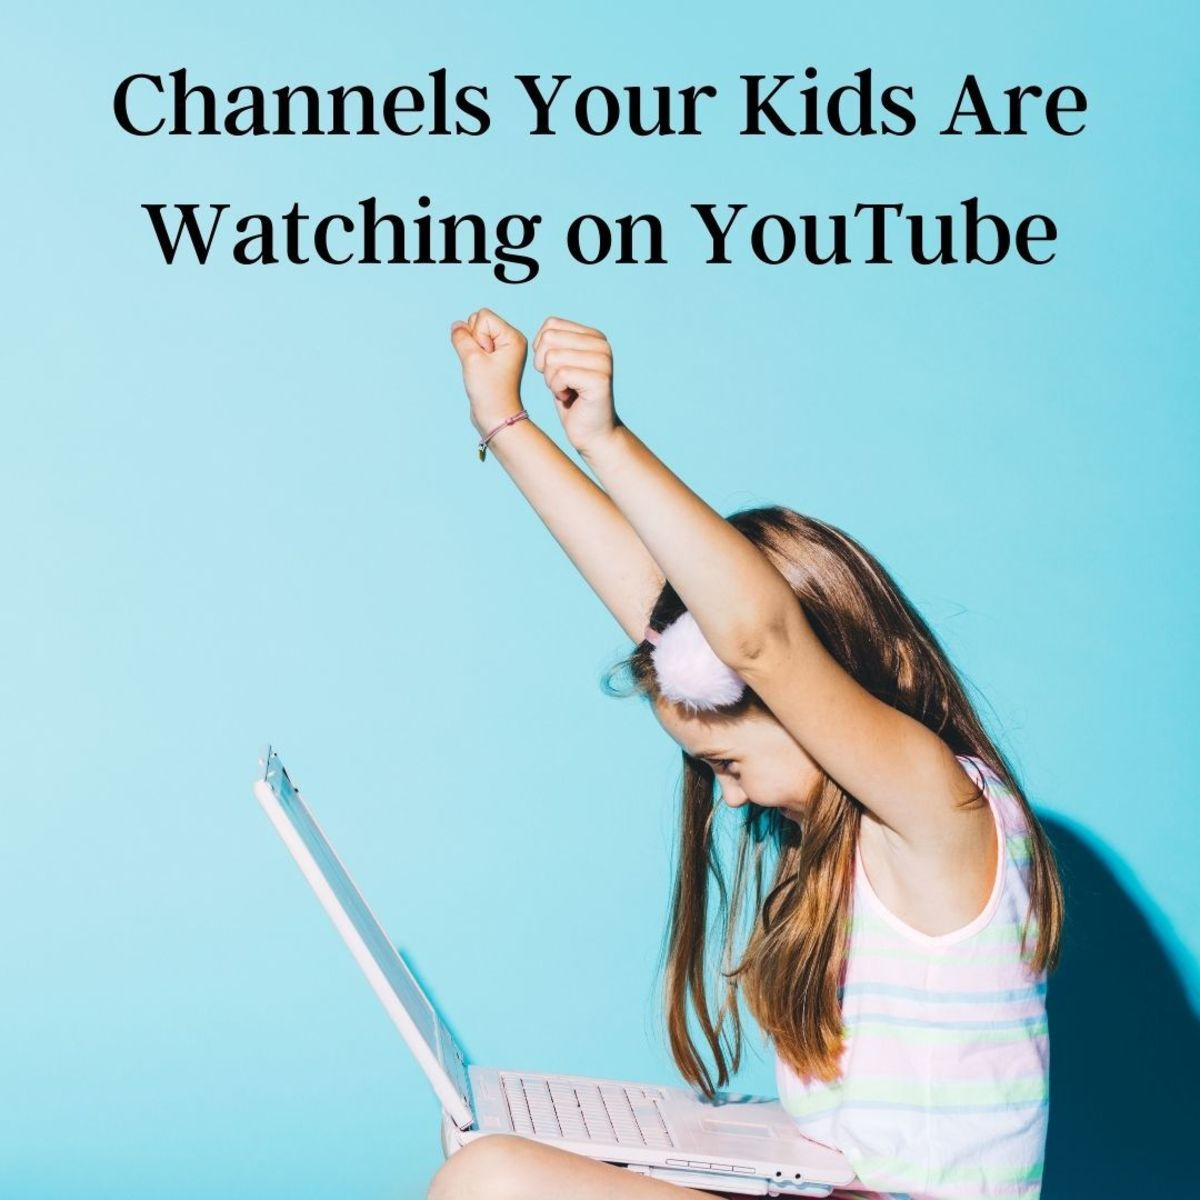 What are your kids watching on YouTube?